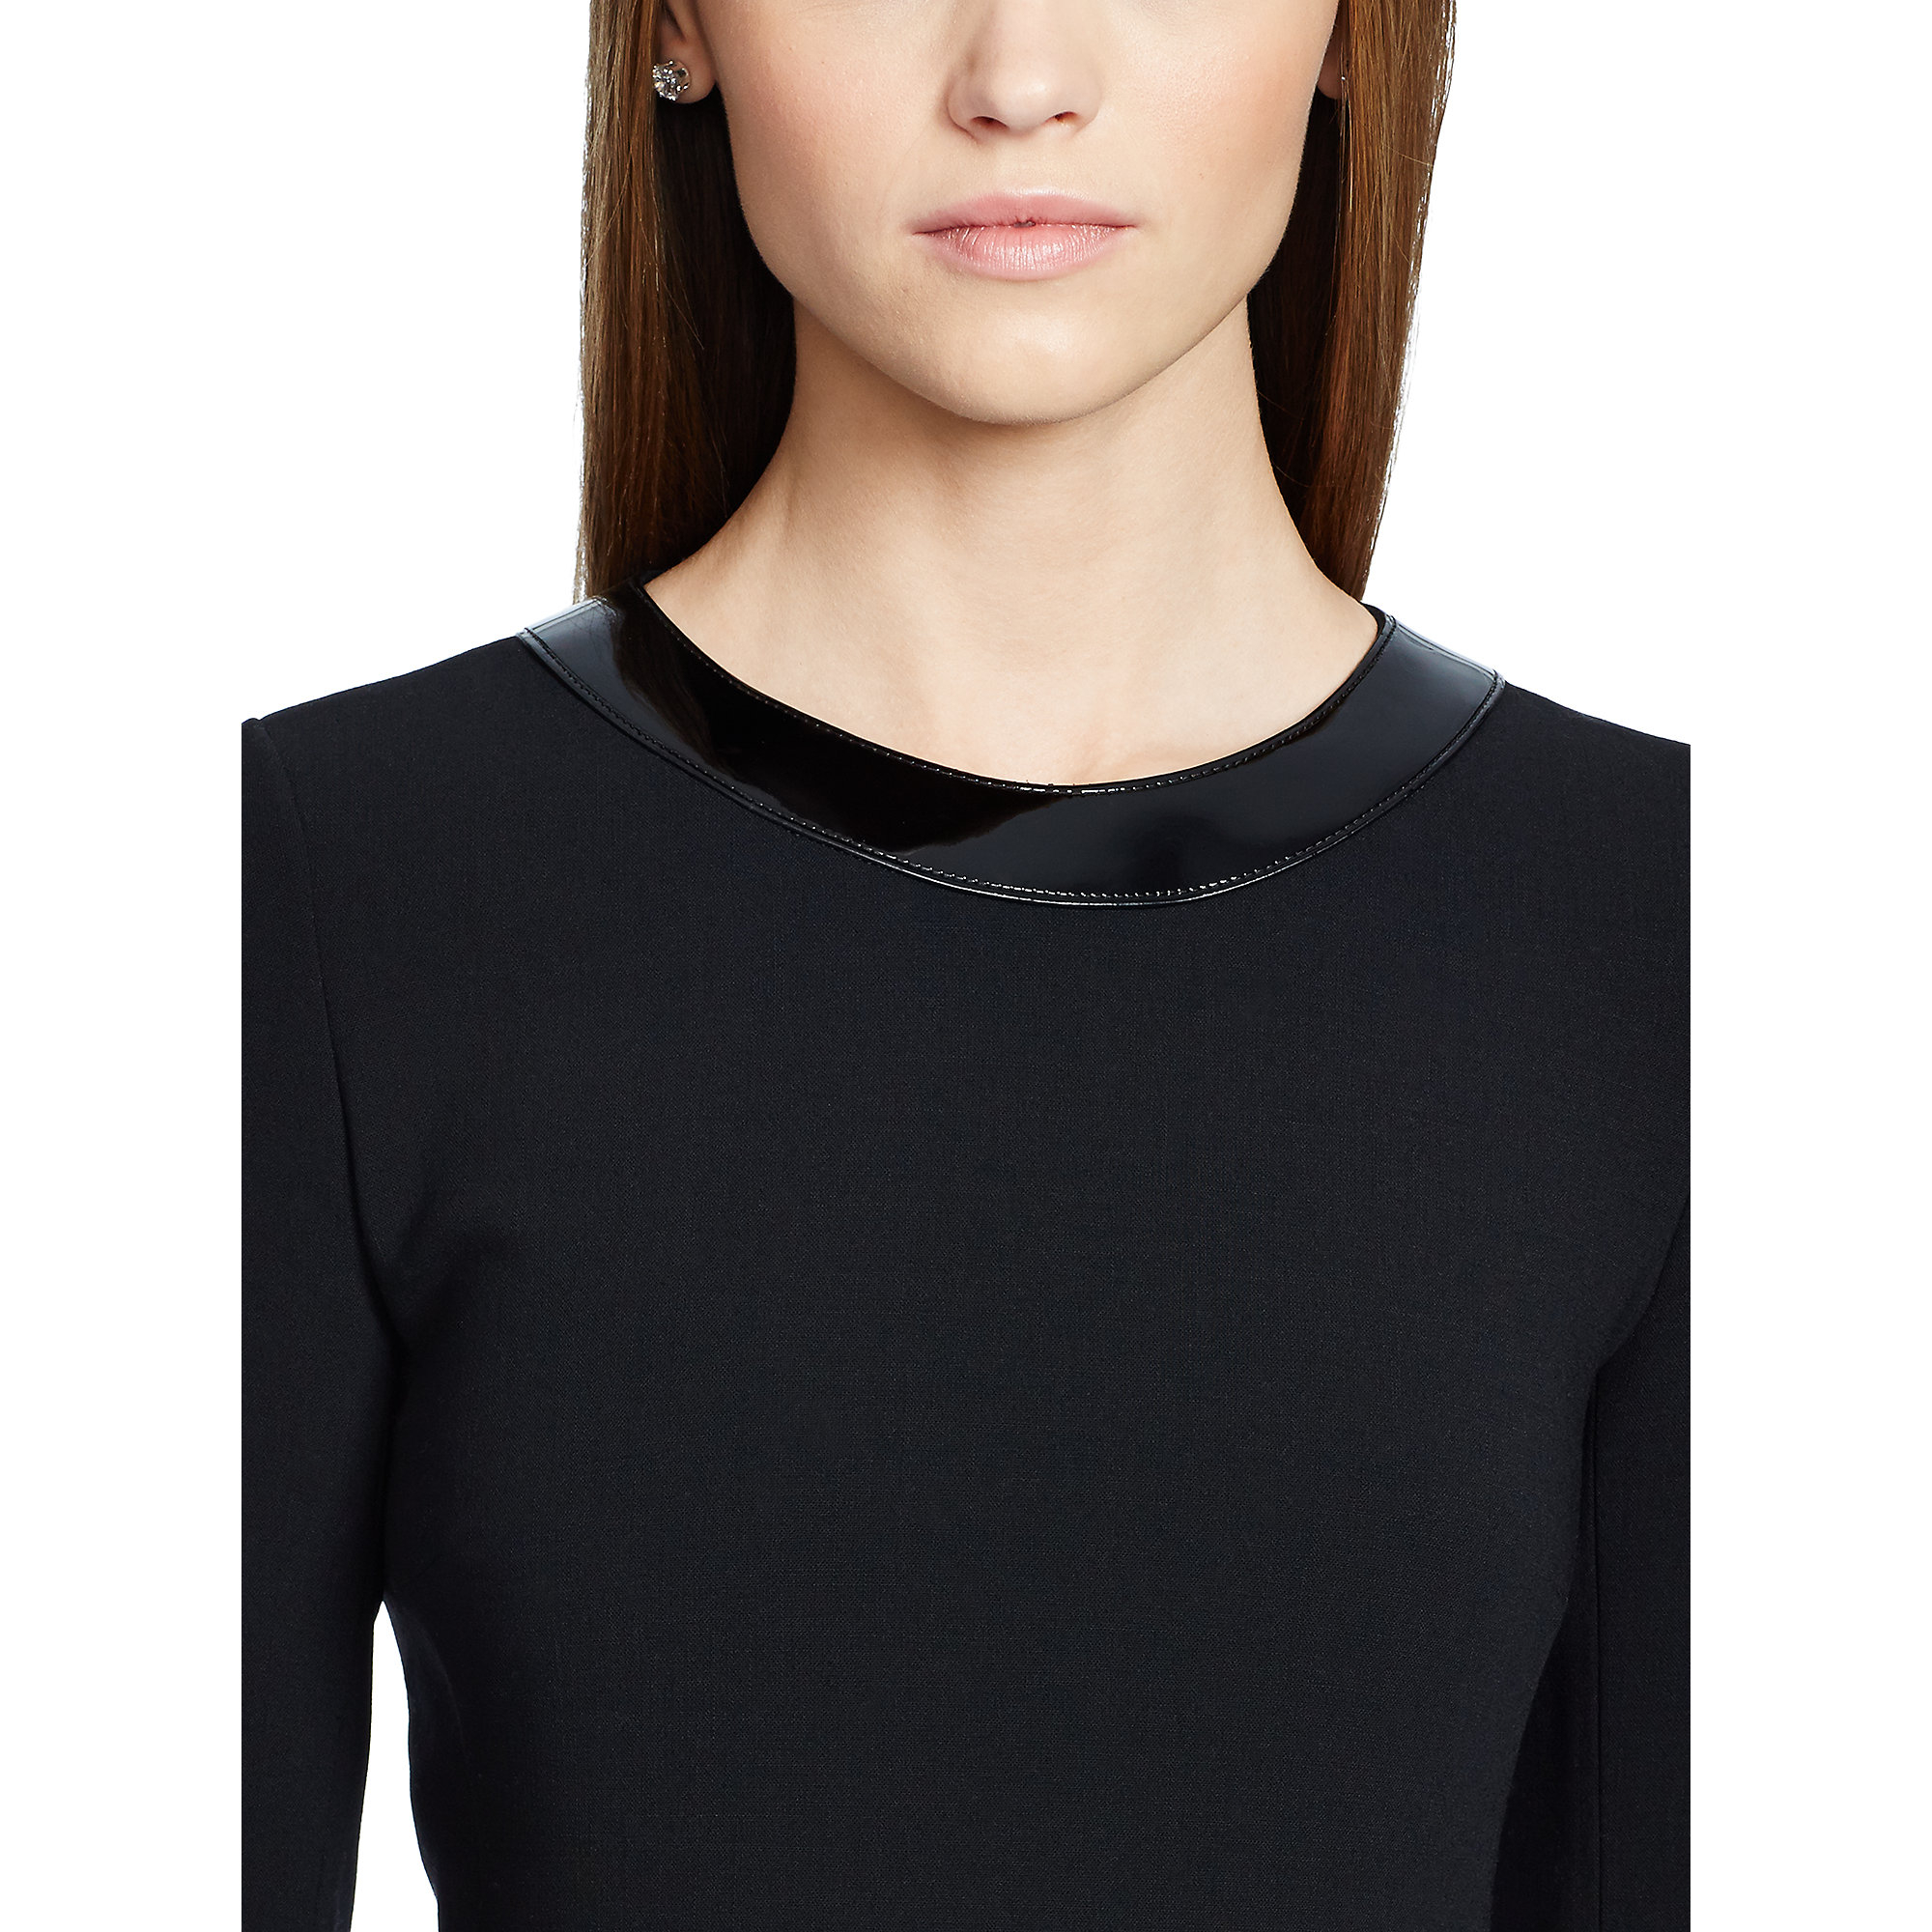 Buy Cheap Visit New Ralph Lauren Leather-Trimmed Long Sleeve Top Discount Extremely Limit Discount oqbmKQkY